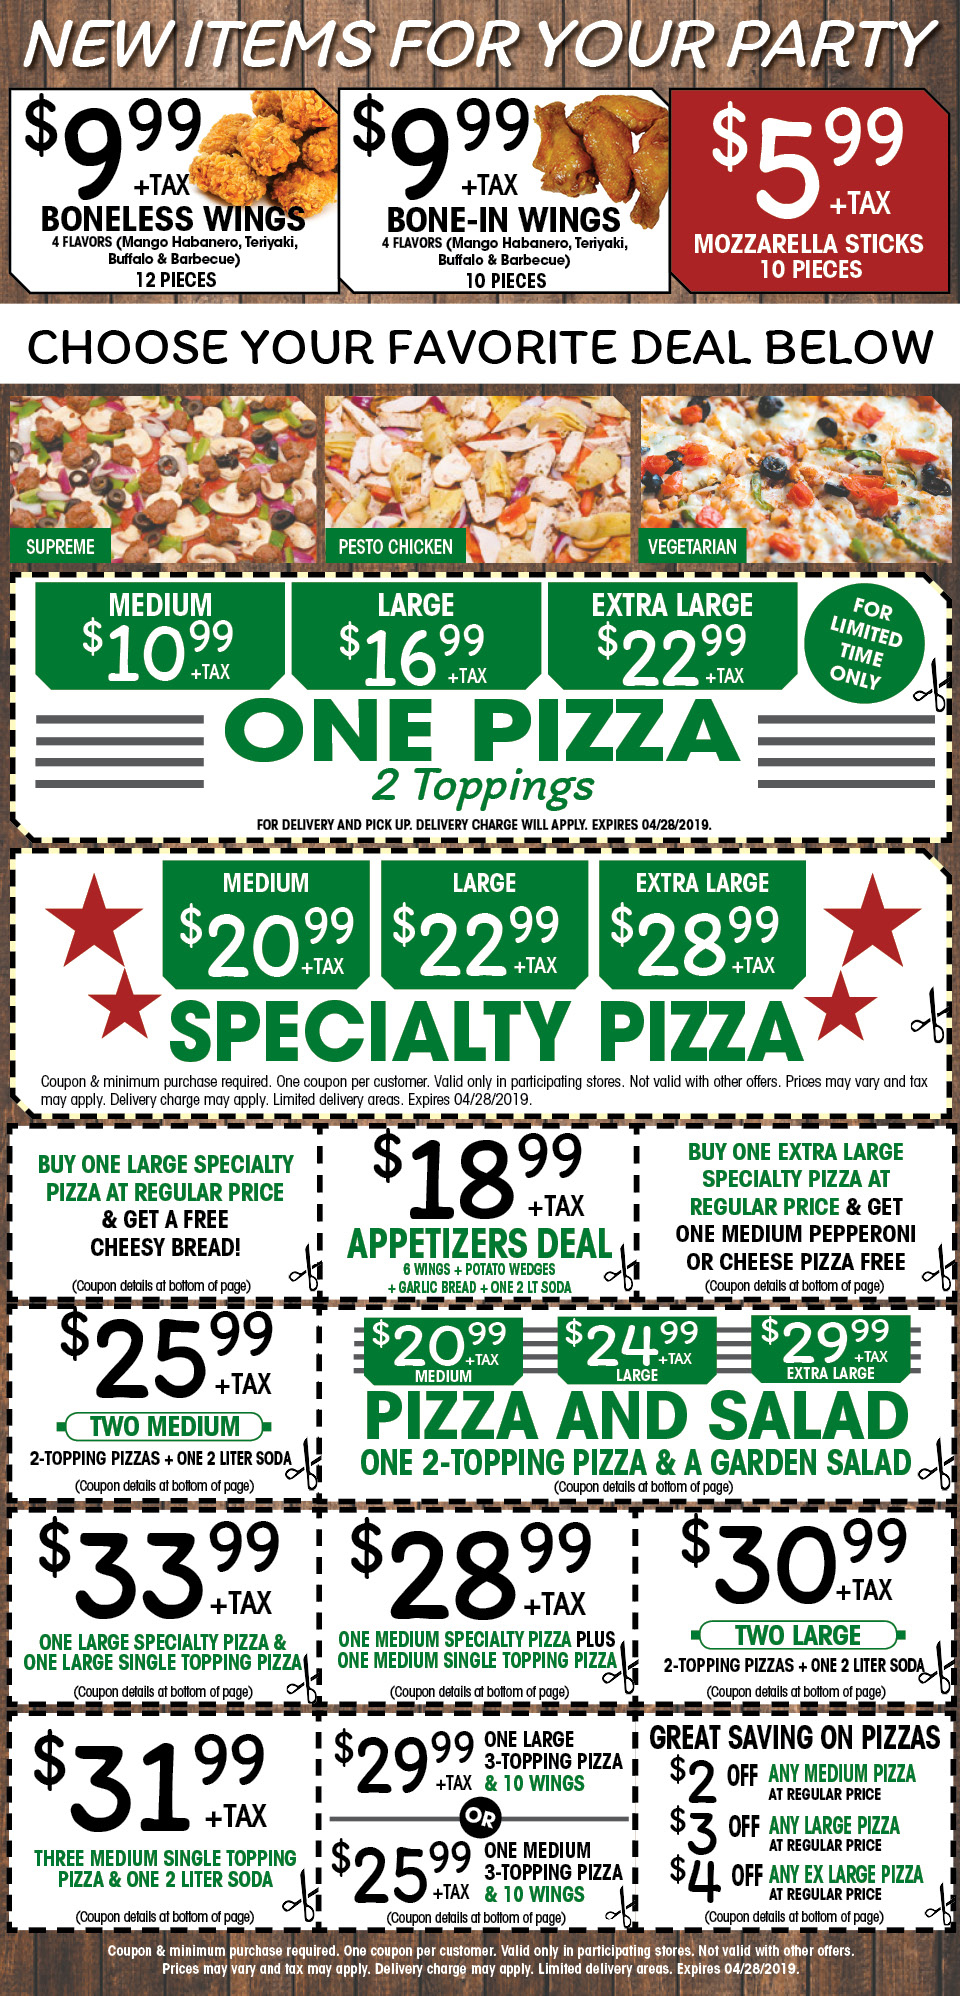 Coupons and Specials at Via Mia Pizza on Camden in San Jose, CA